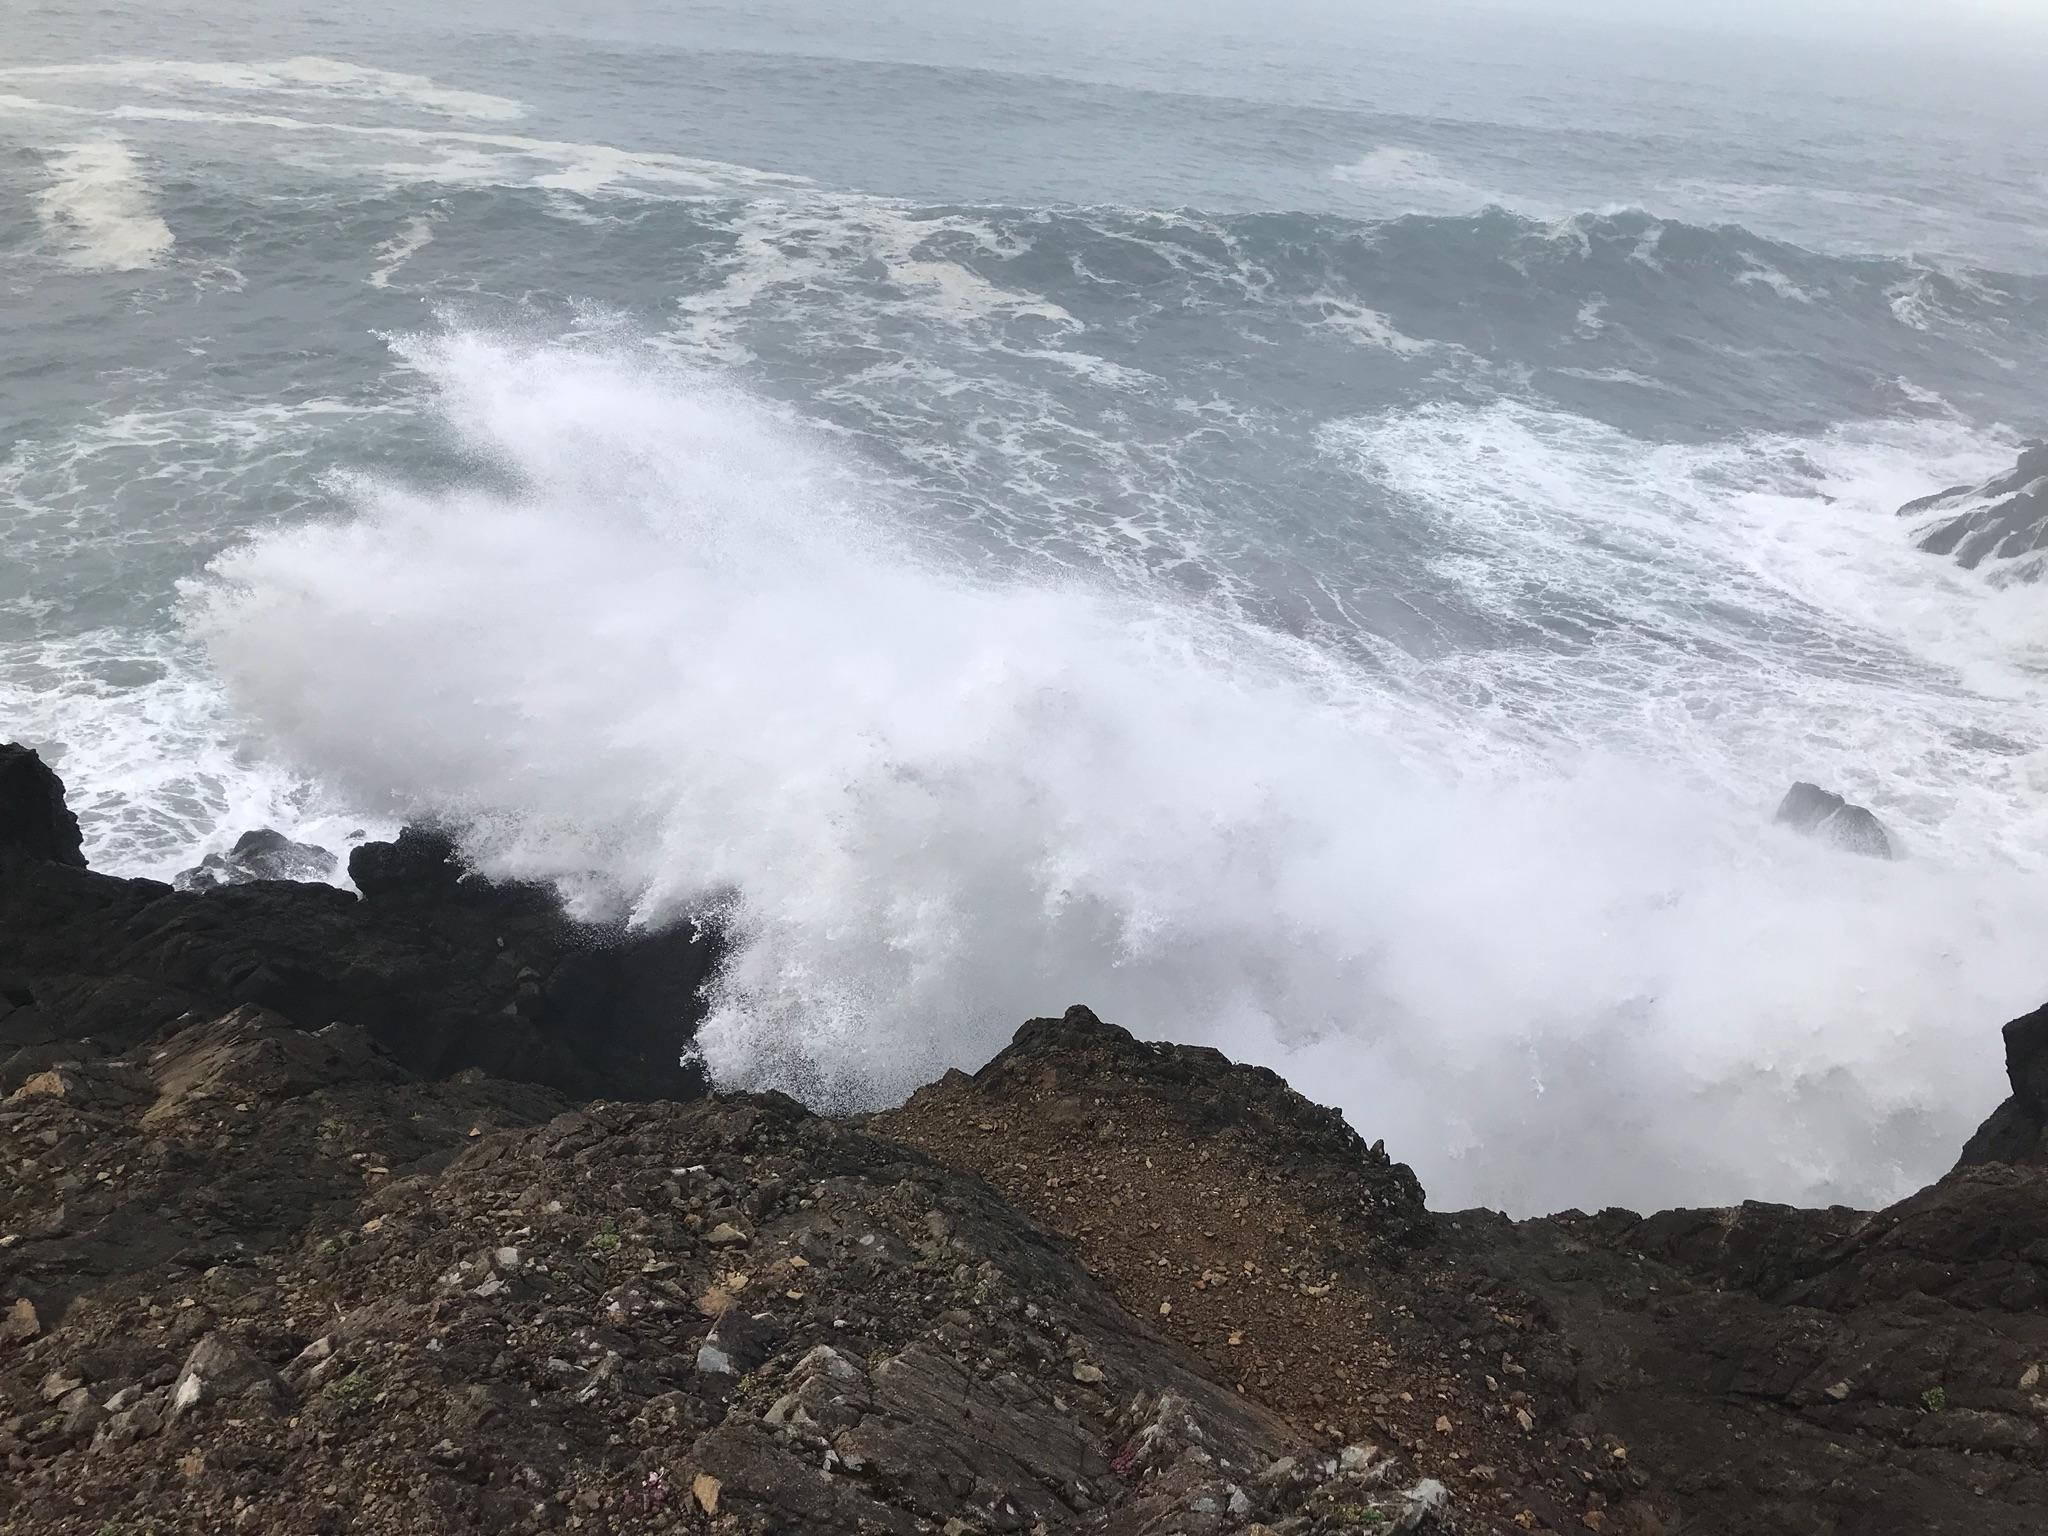 Christopher M. Kareck, 21, of Sparks, Nevada, was swept off some rocks into the ocean near the Indian Sands Trail on Wednesday, police said. State police from Gold Beach responded at 10:35 a.m., along with the U.S. Coast Guard. (OSP)<p></p>